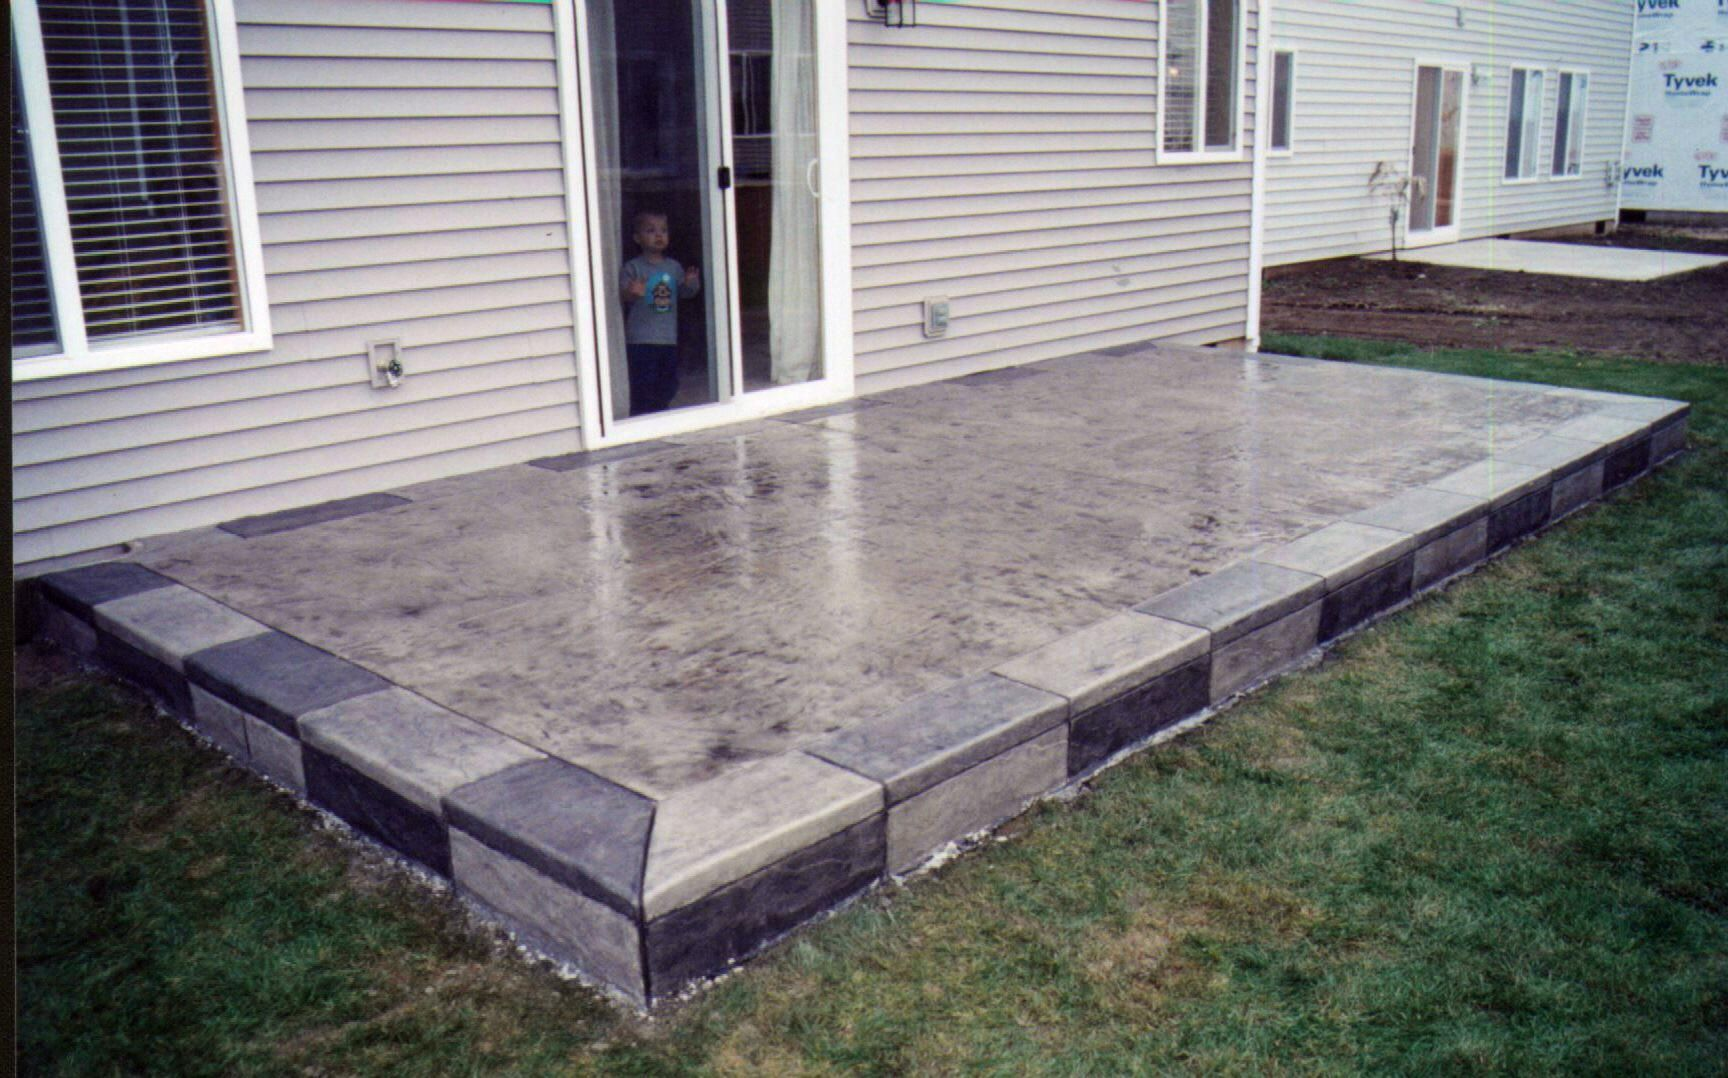 cement patio designs - Bing Images | Outdoor Living ... on Concrete Slab Patio Ideas id=47577